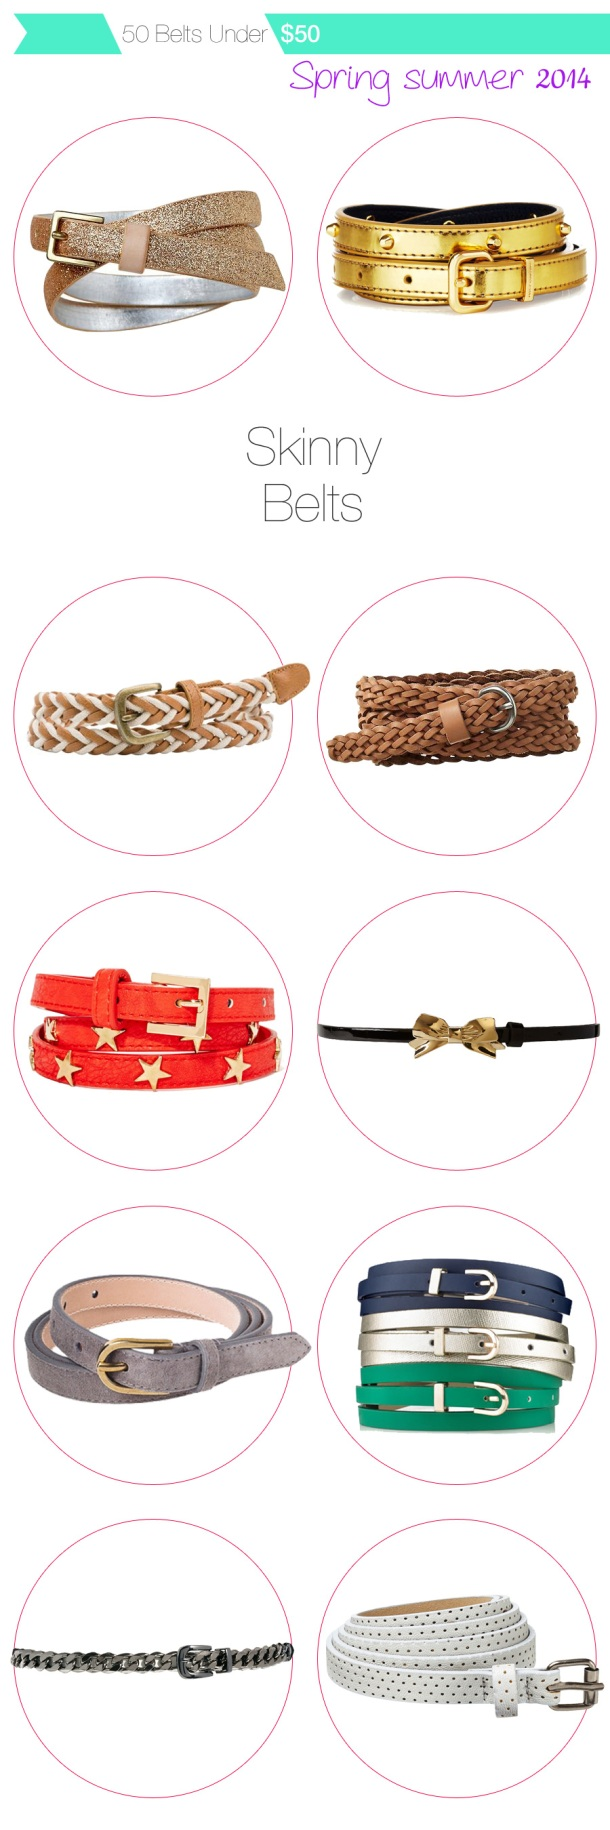 50-belts-under-$50-spring-summer-2014-skinny-belts